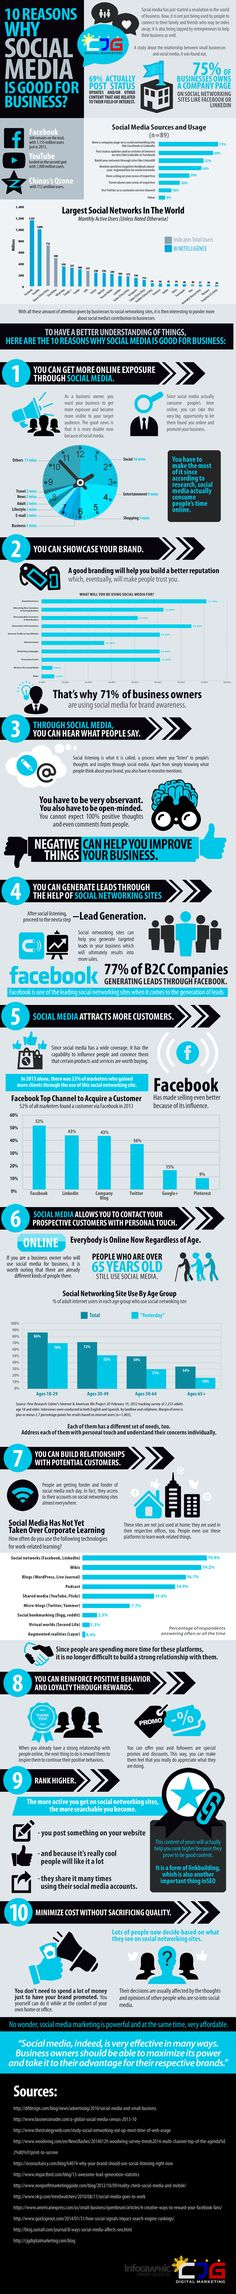 10 Reasons why social media is good for business | #infographic | www.notjustpowder.com